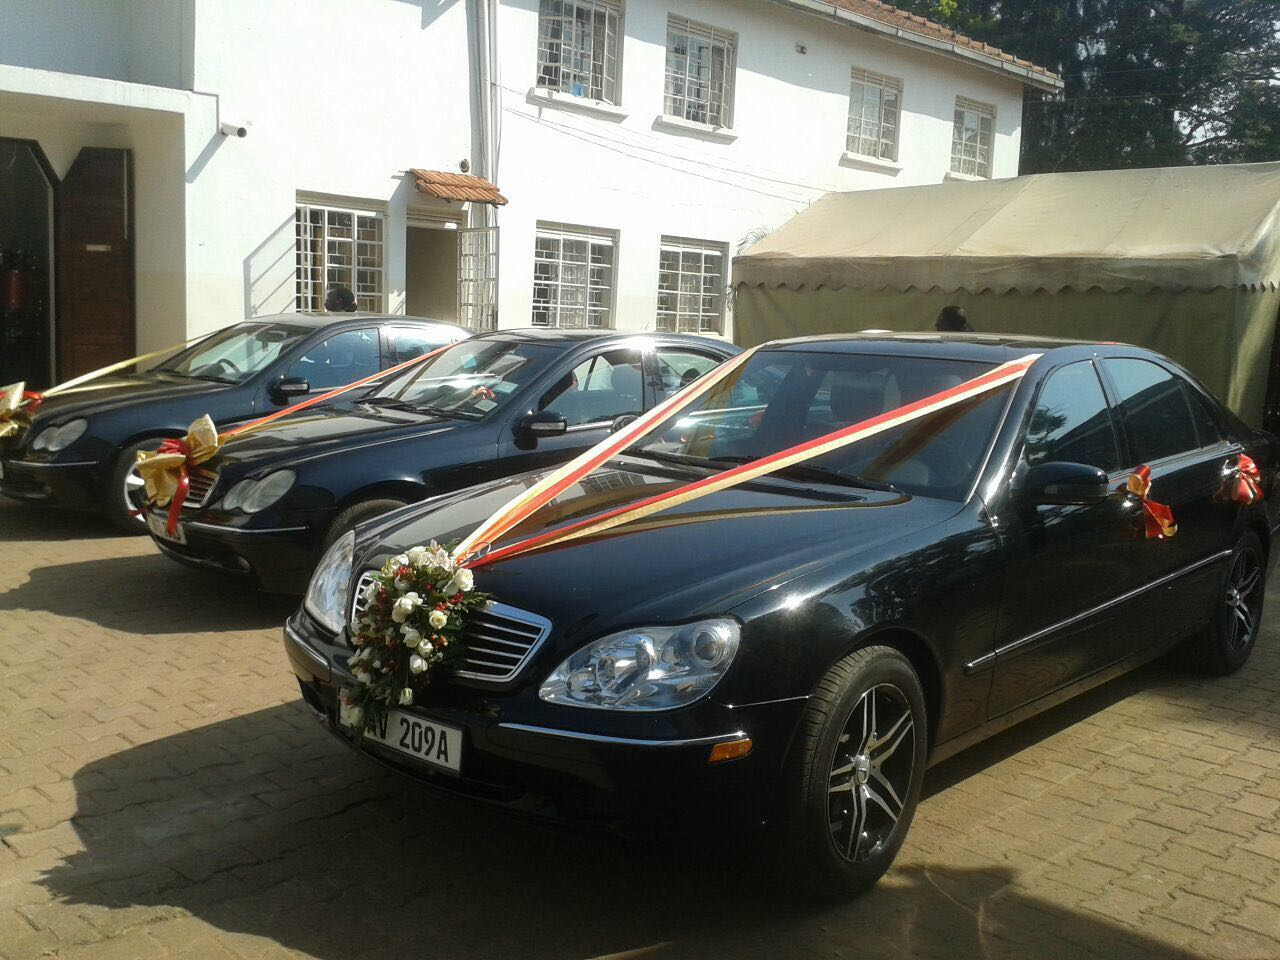 Black Mercedes benz packages for bride and groom entourage